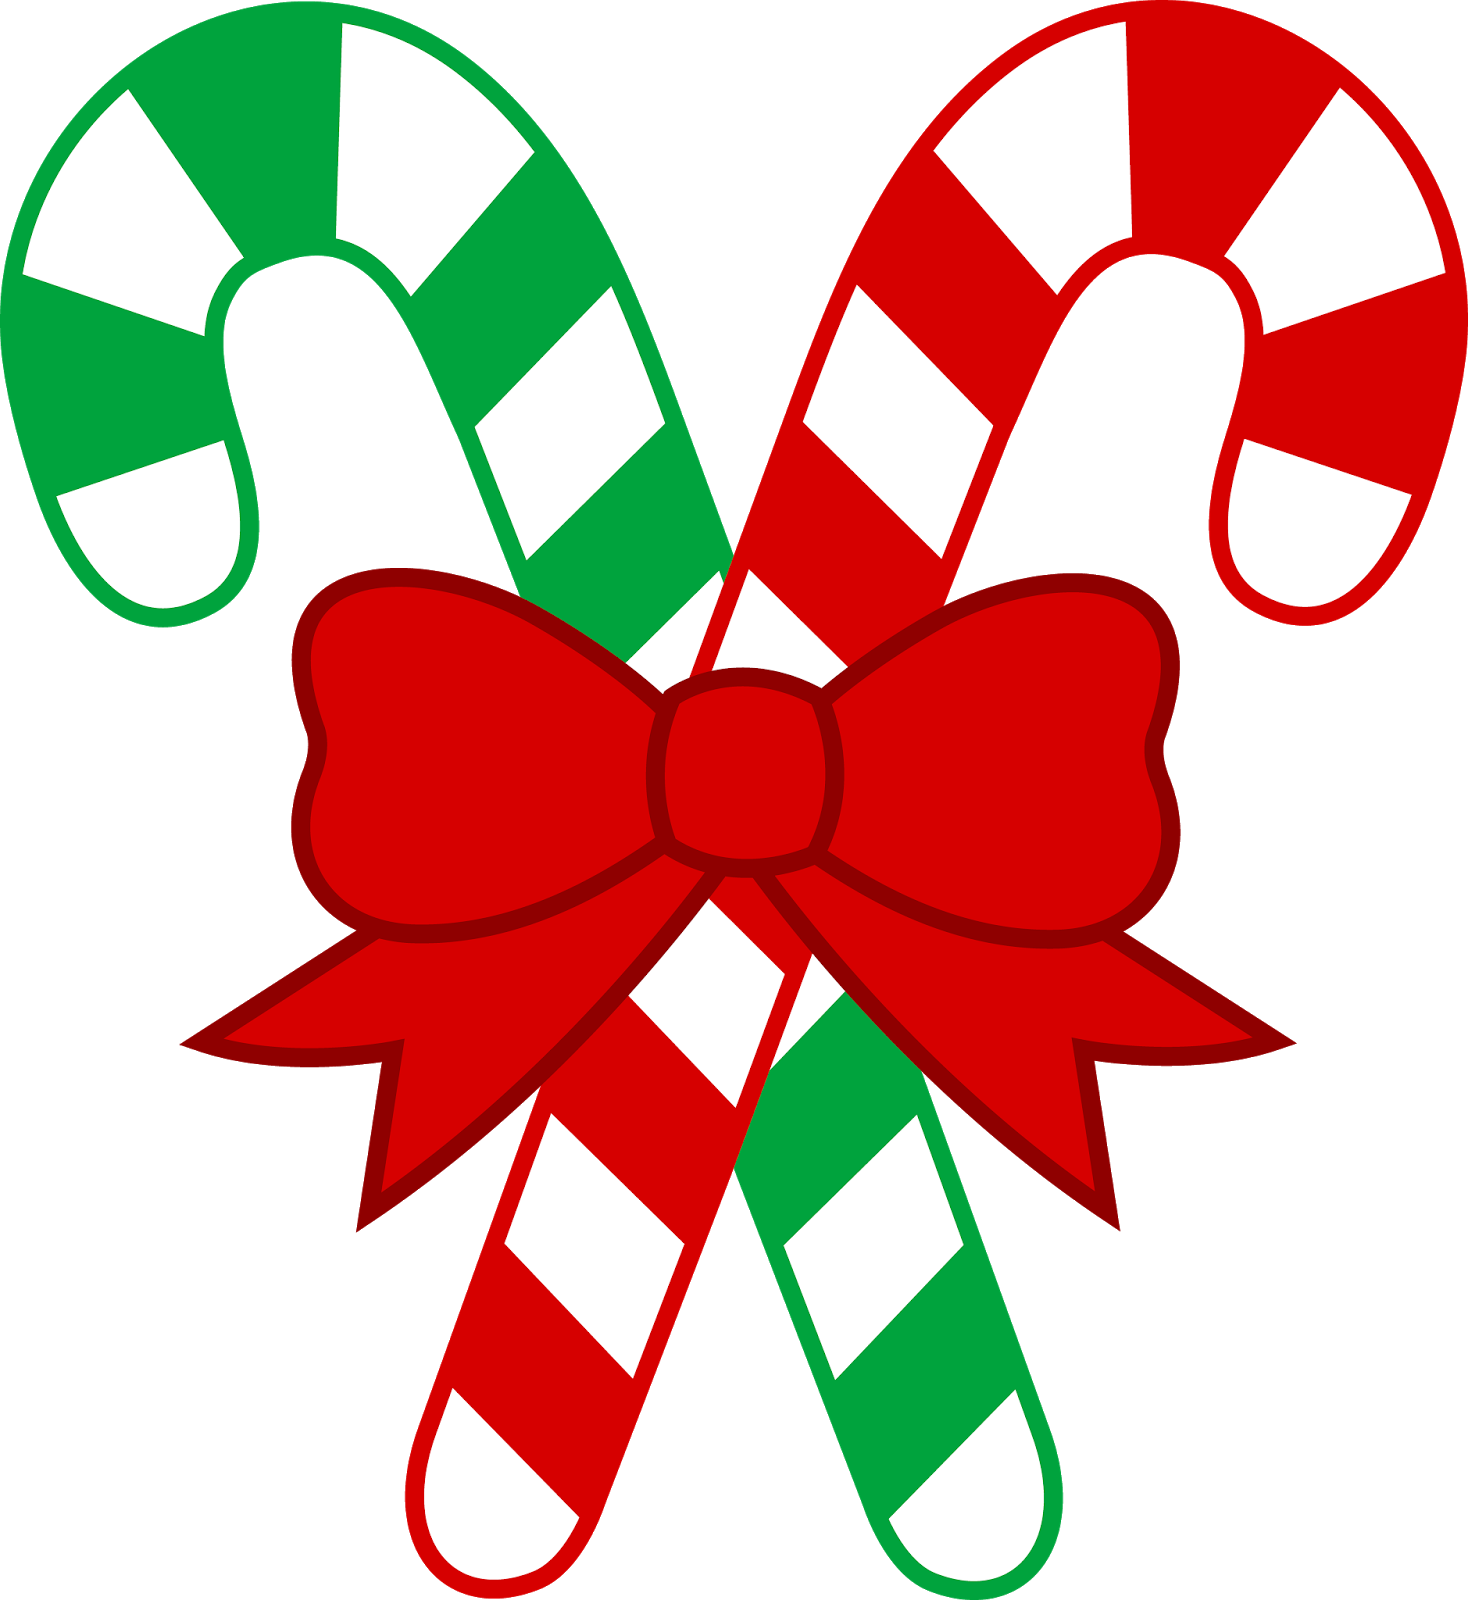 Merry Christmas Day Clip Art Images & Pictures - Becuo